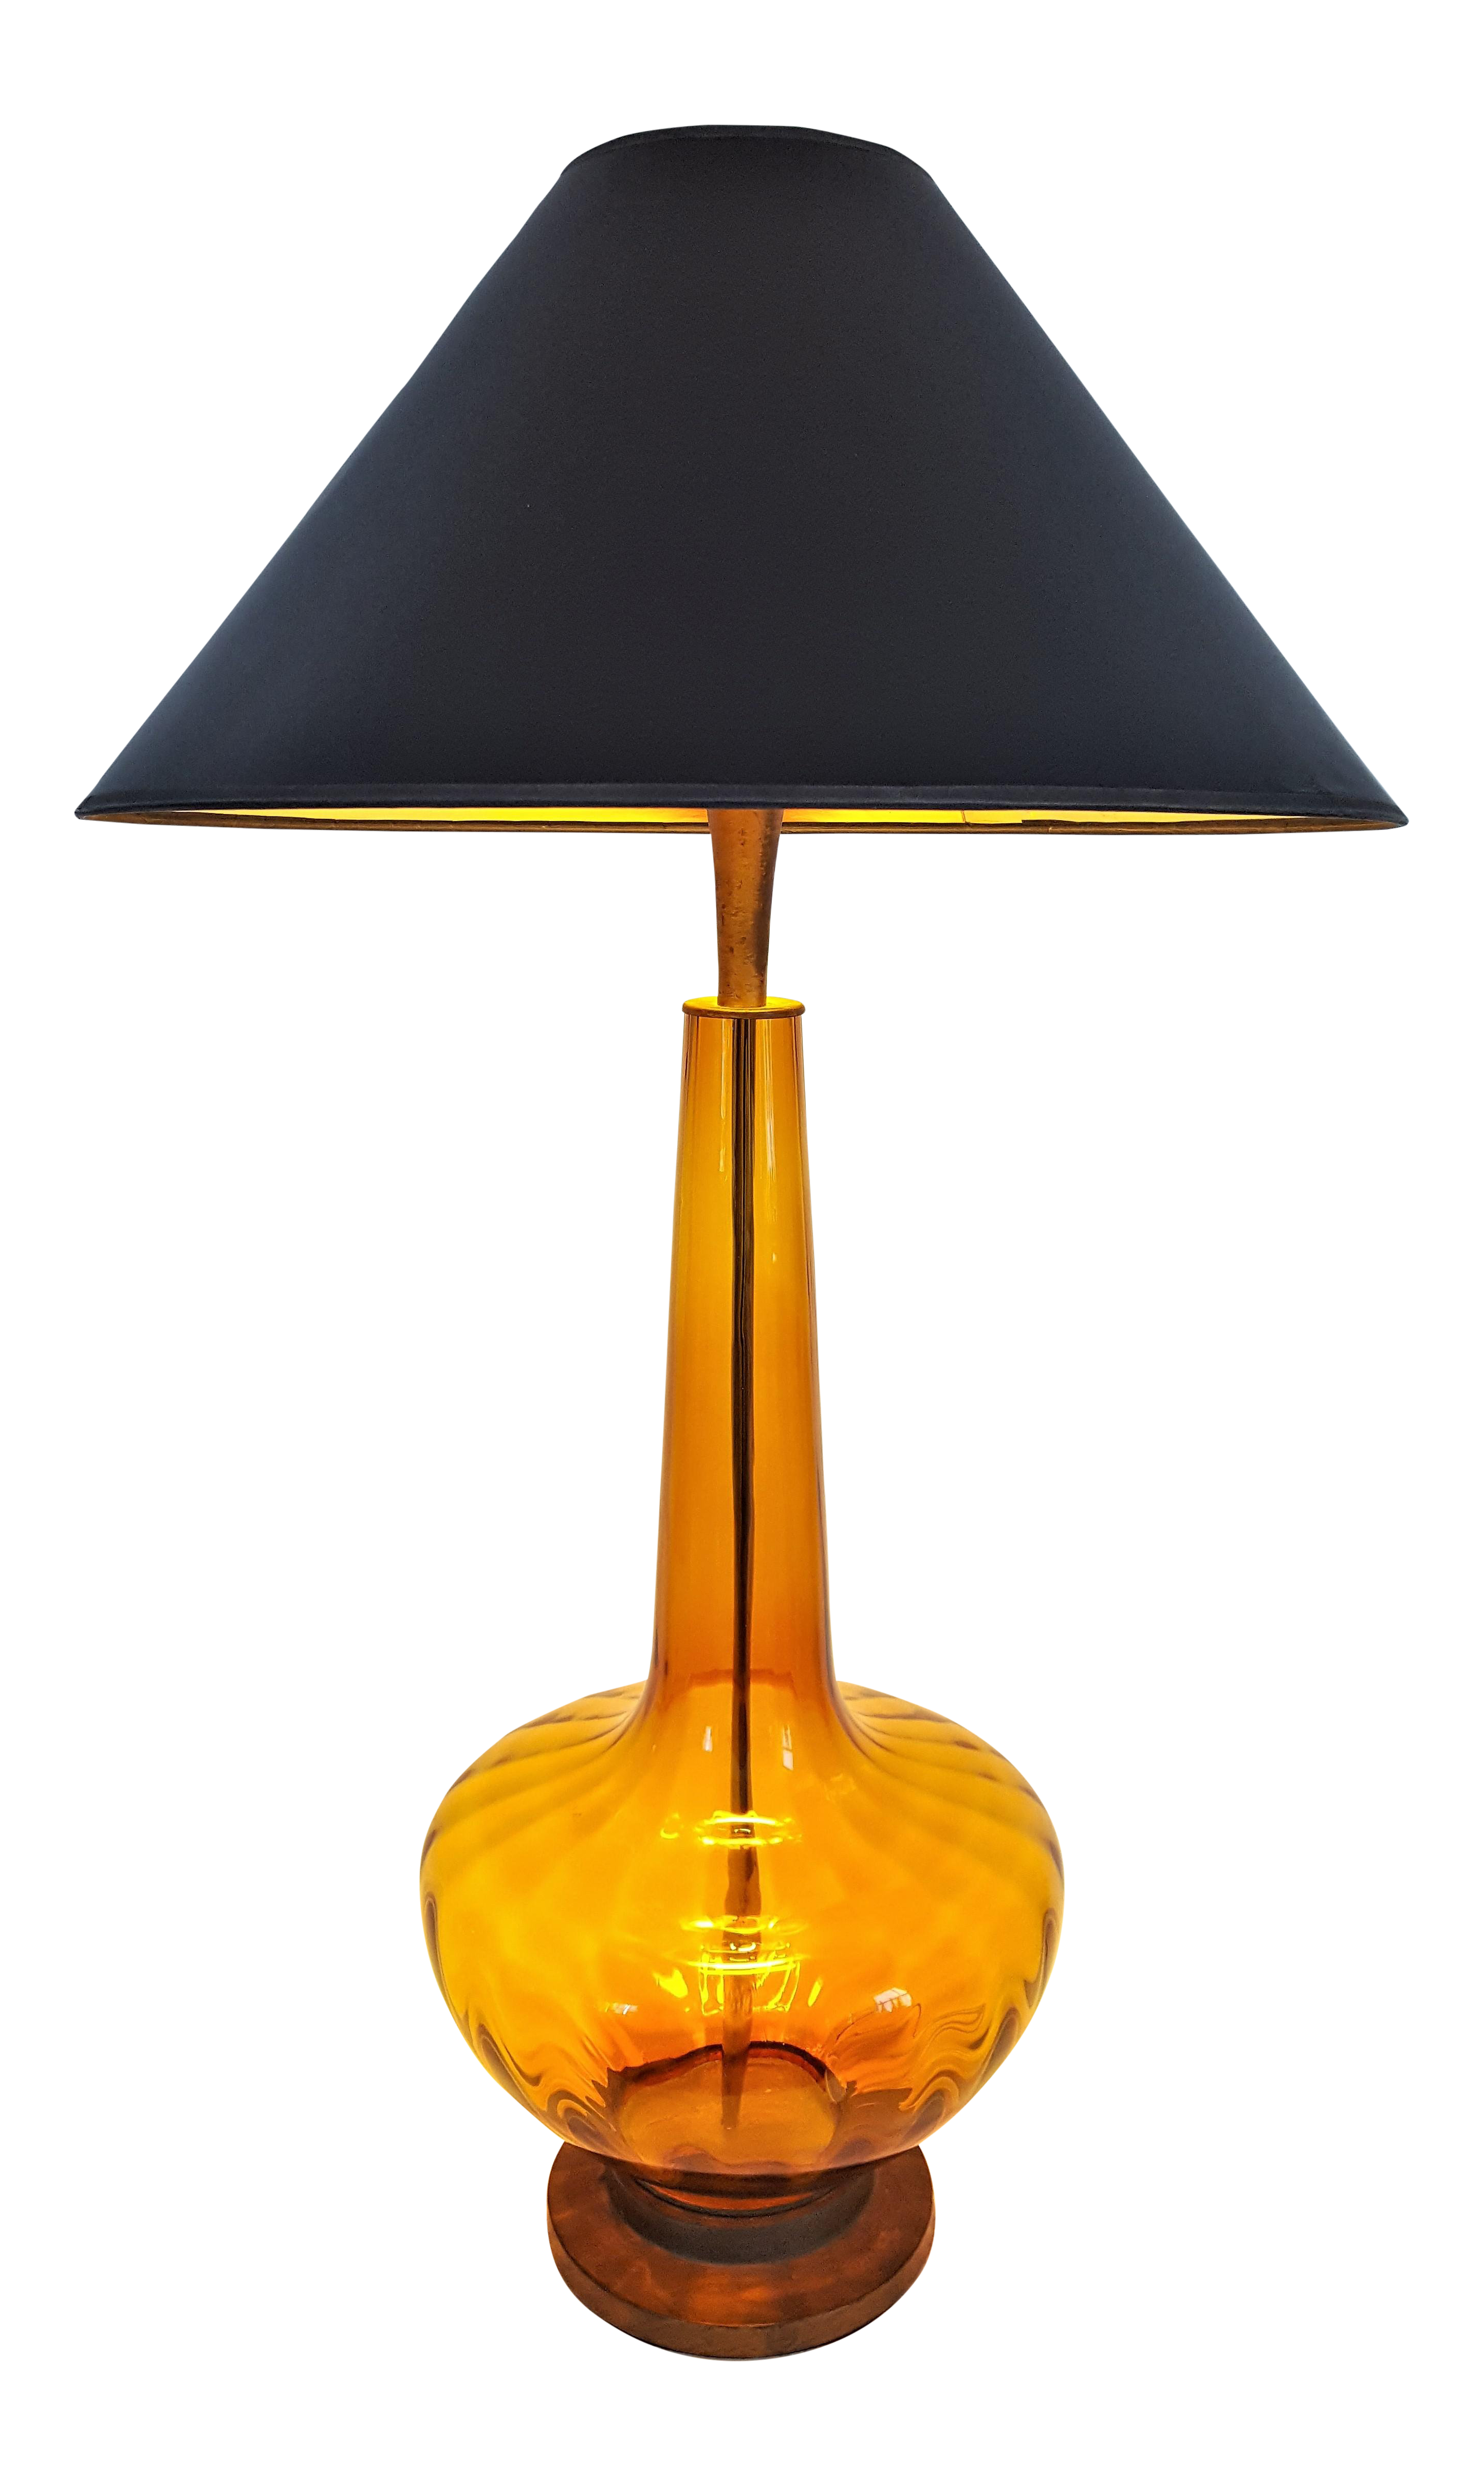 Large 1950 S Vintage Murano Amber Glass Table Lamp Italy Italian Mid Century Modern Mcm Palm Beach Boho Chic Tropical Amber On Lamp Table Lamp Glass Table Lamp